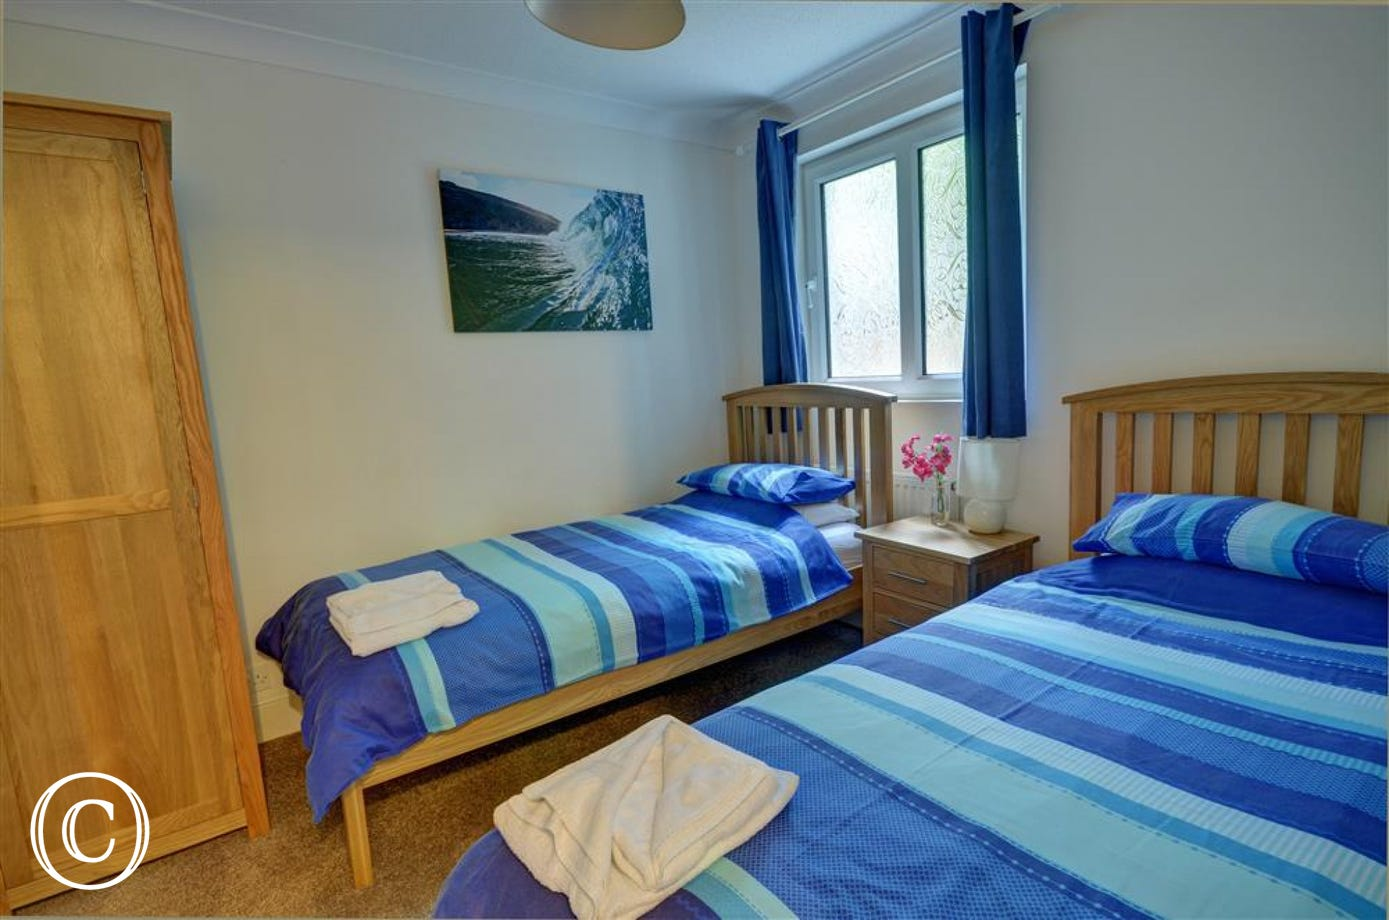 Comfortable colourful twin bedded room